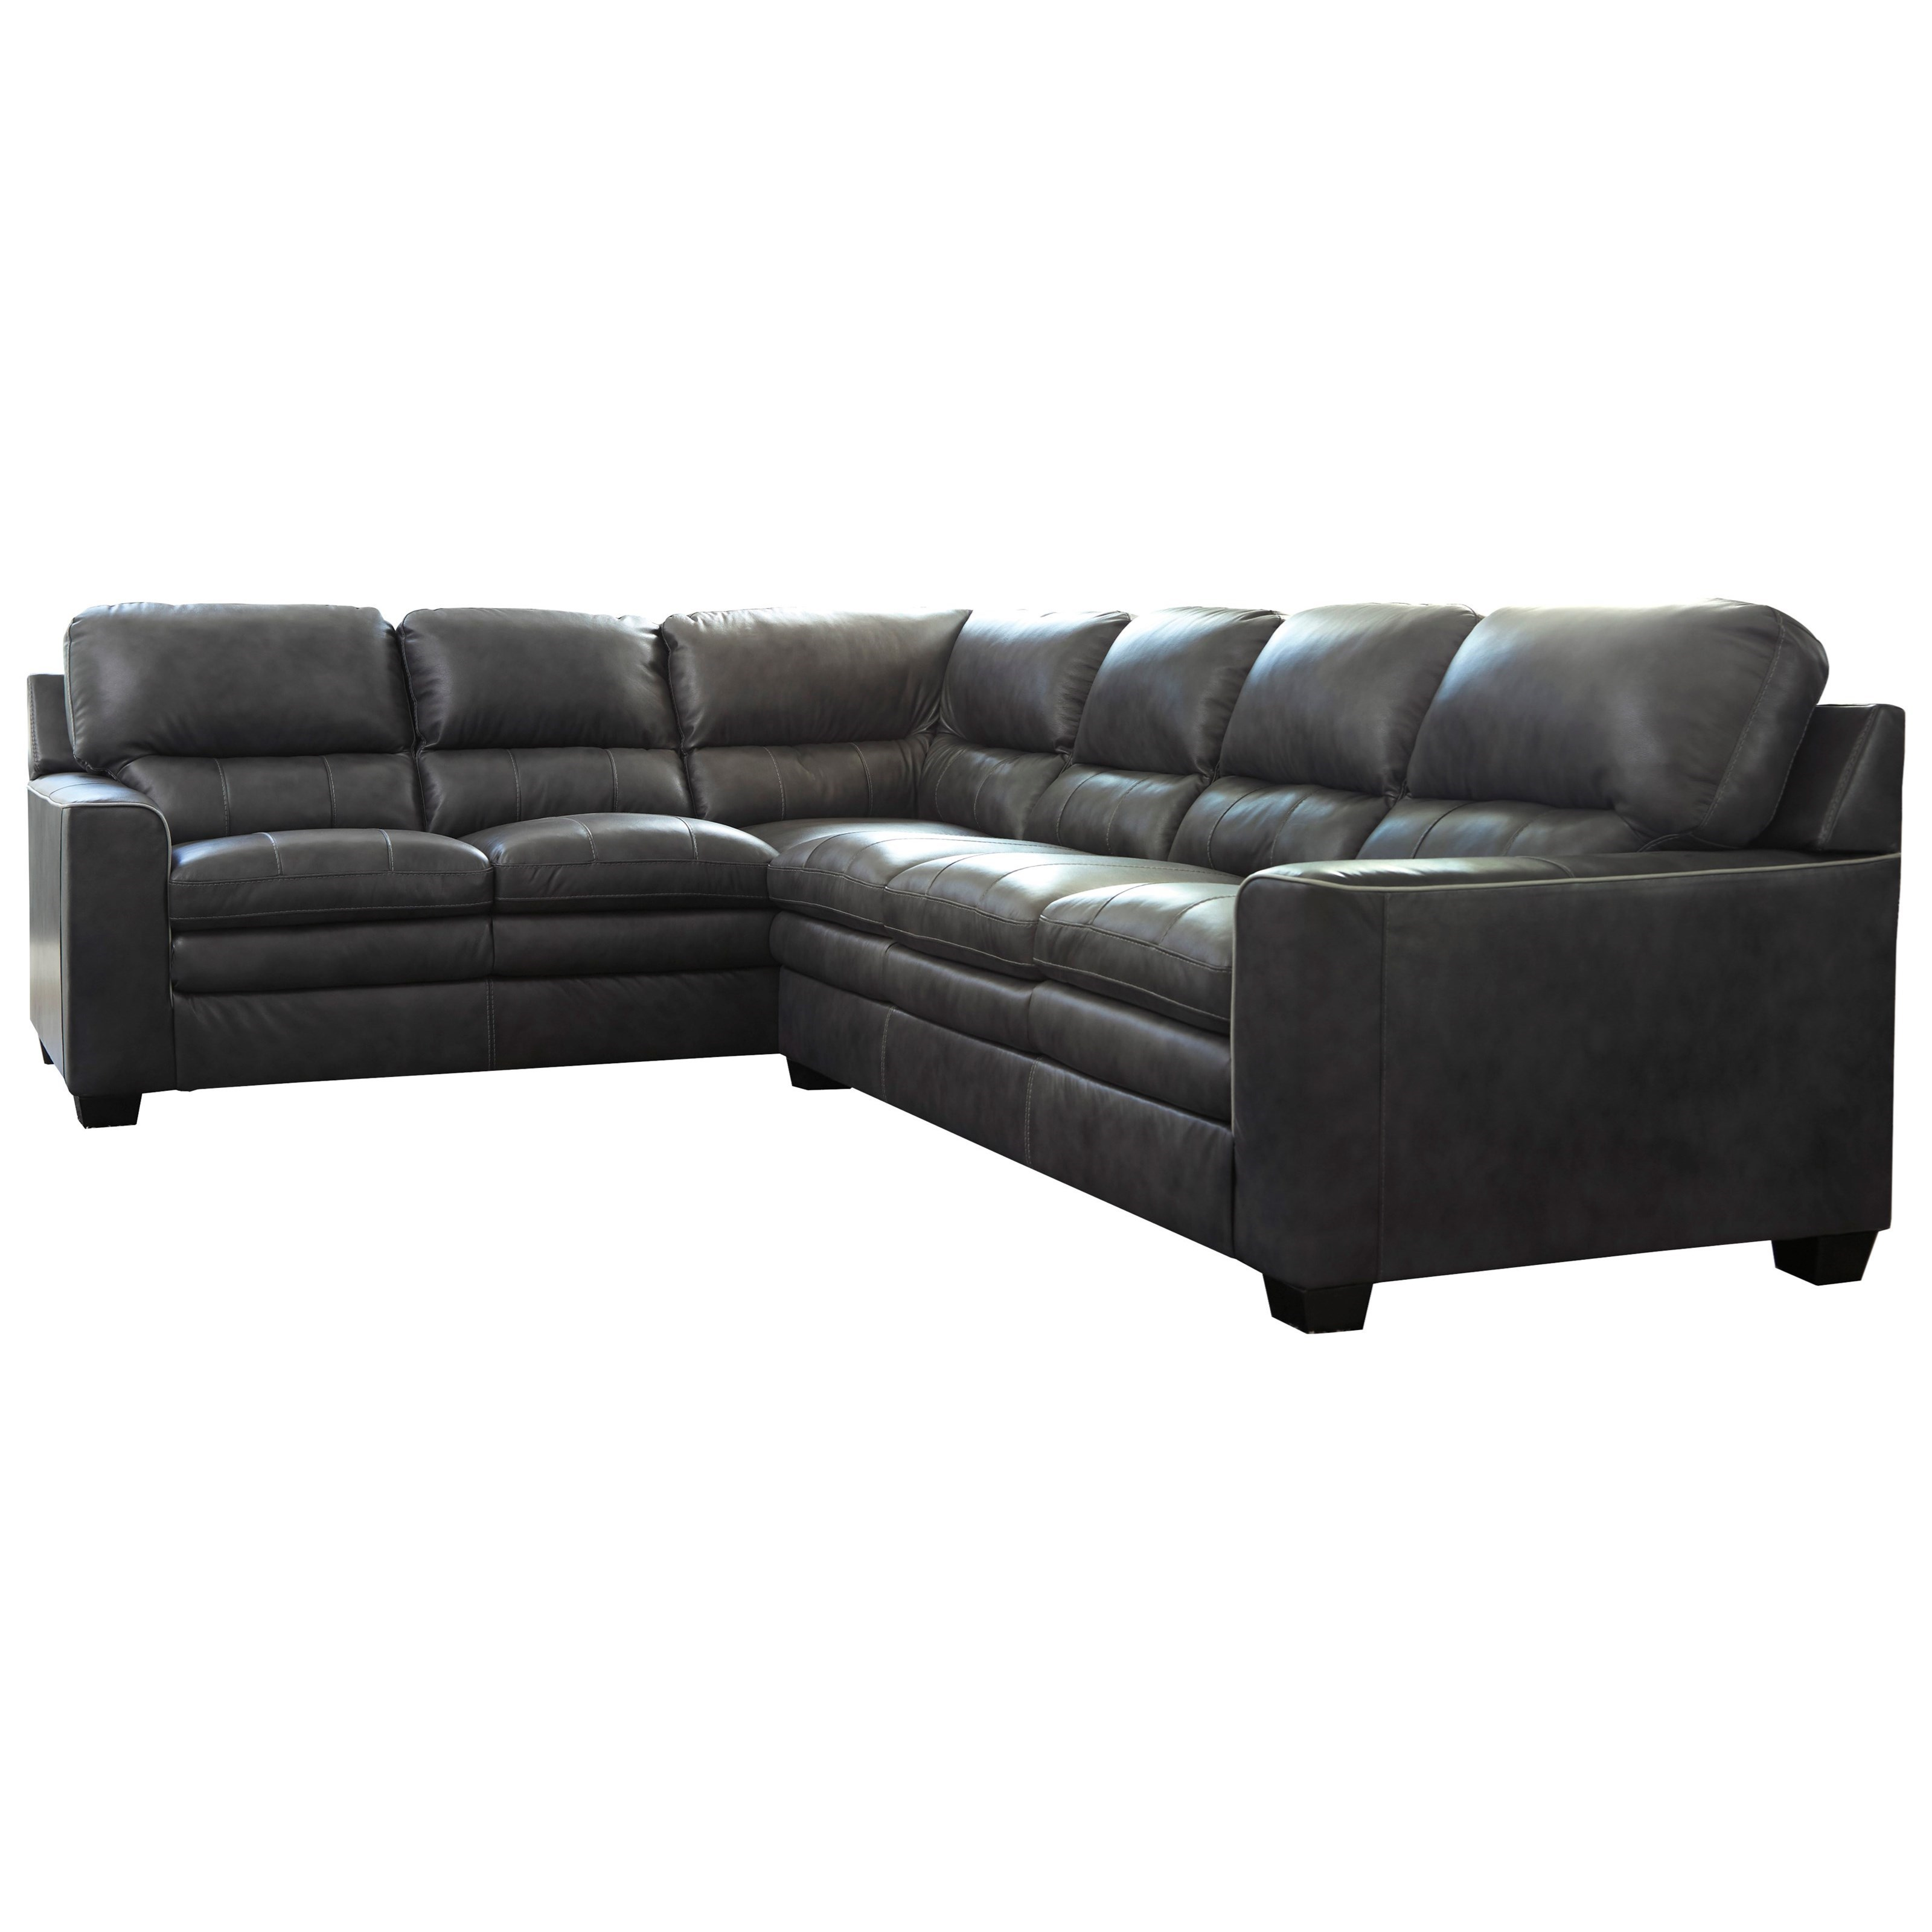 Signature Design By Ashley Gleason Leather Match L Shape Sectional   Becker  Furniture World   Sectional Sofas